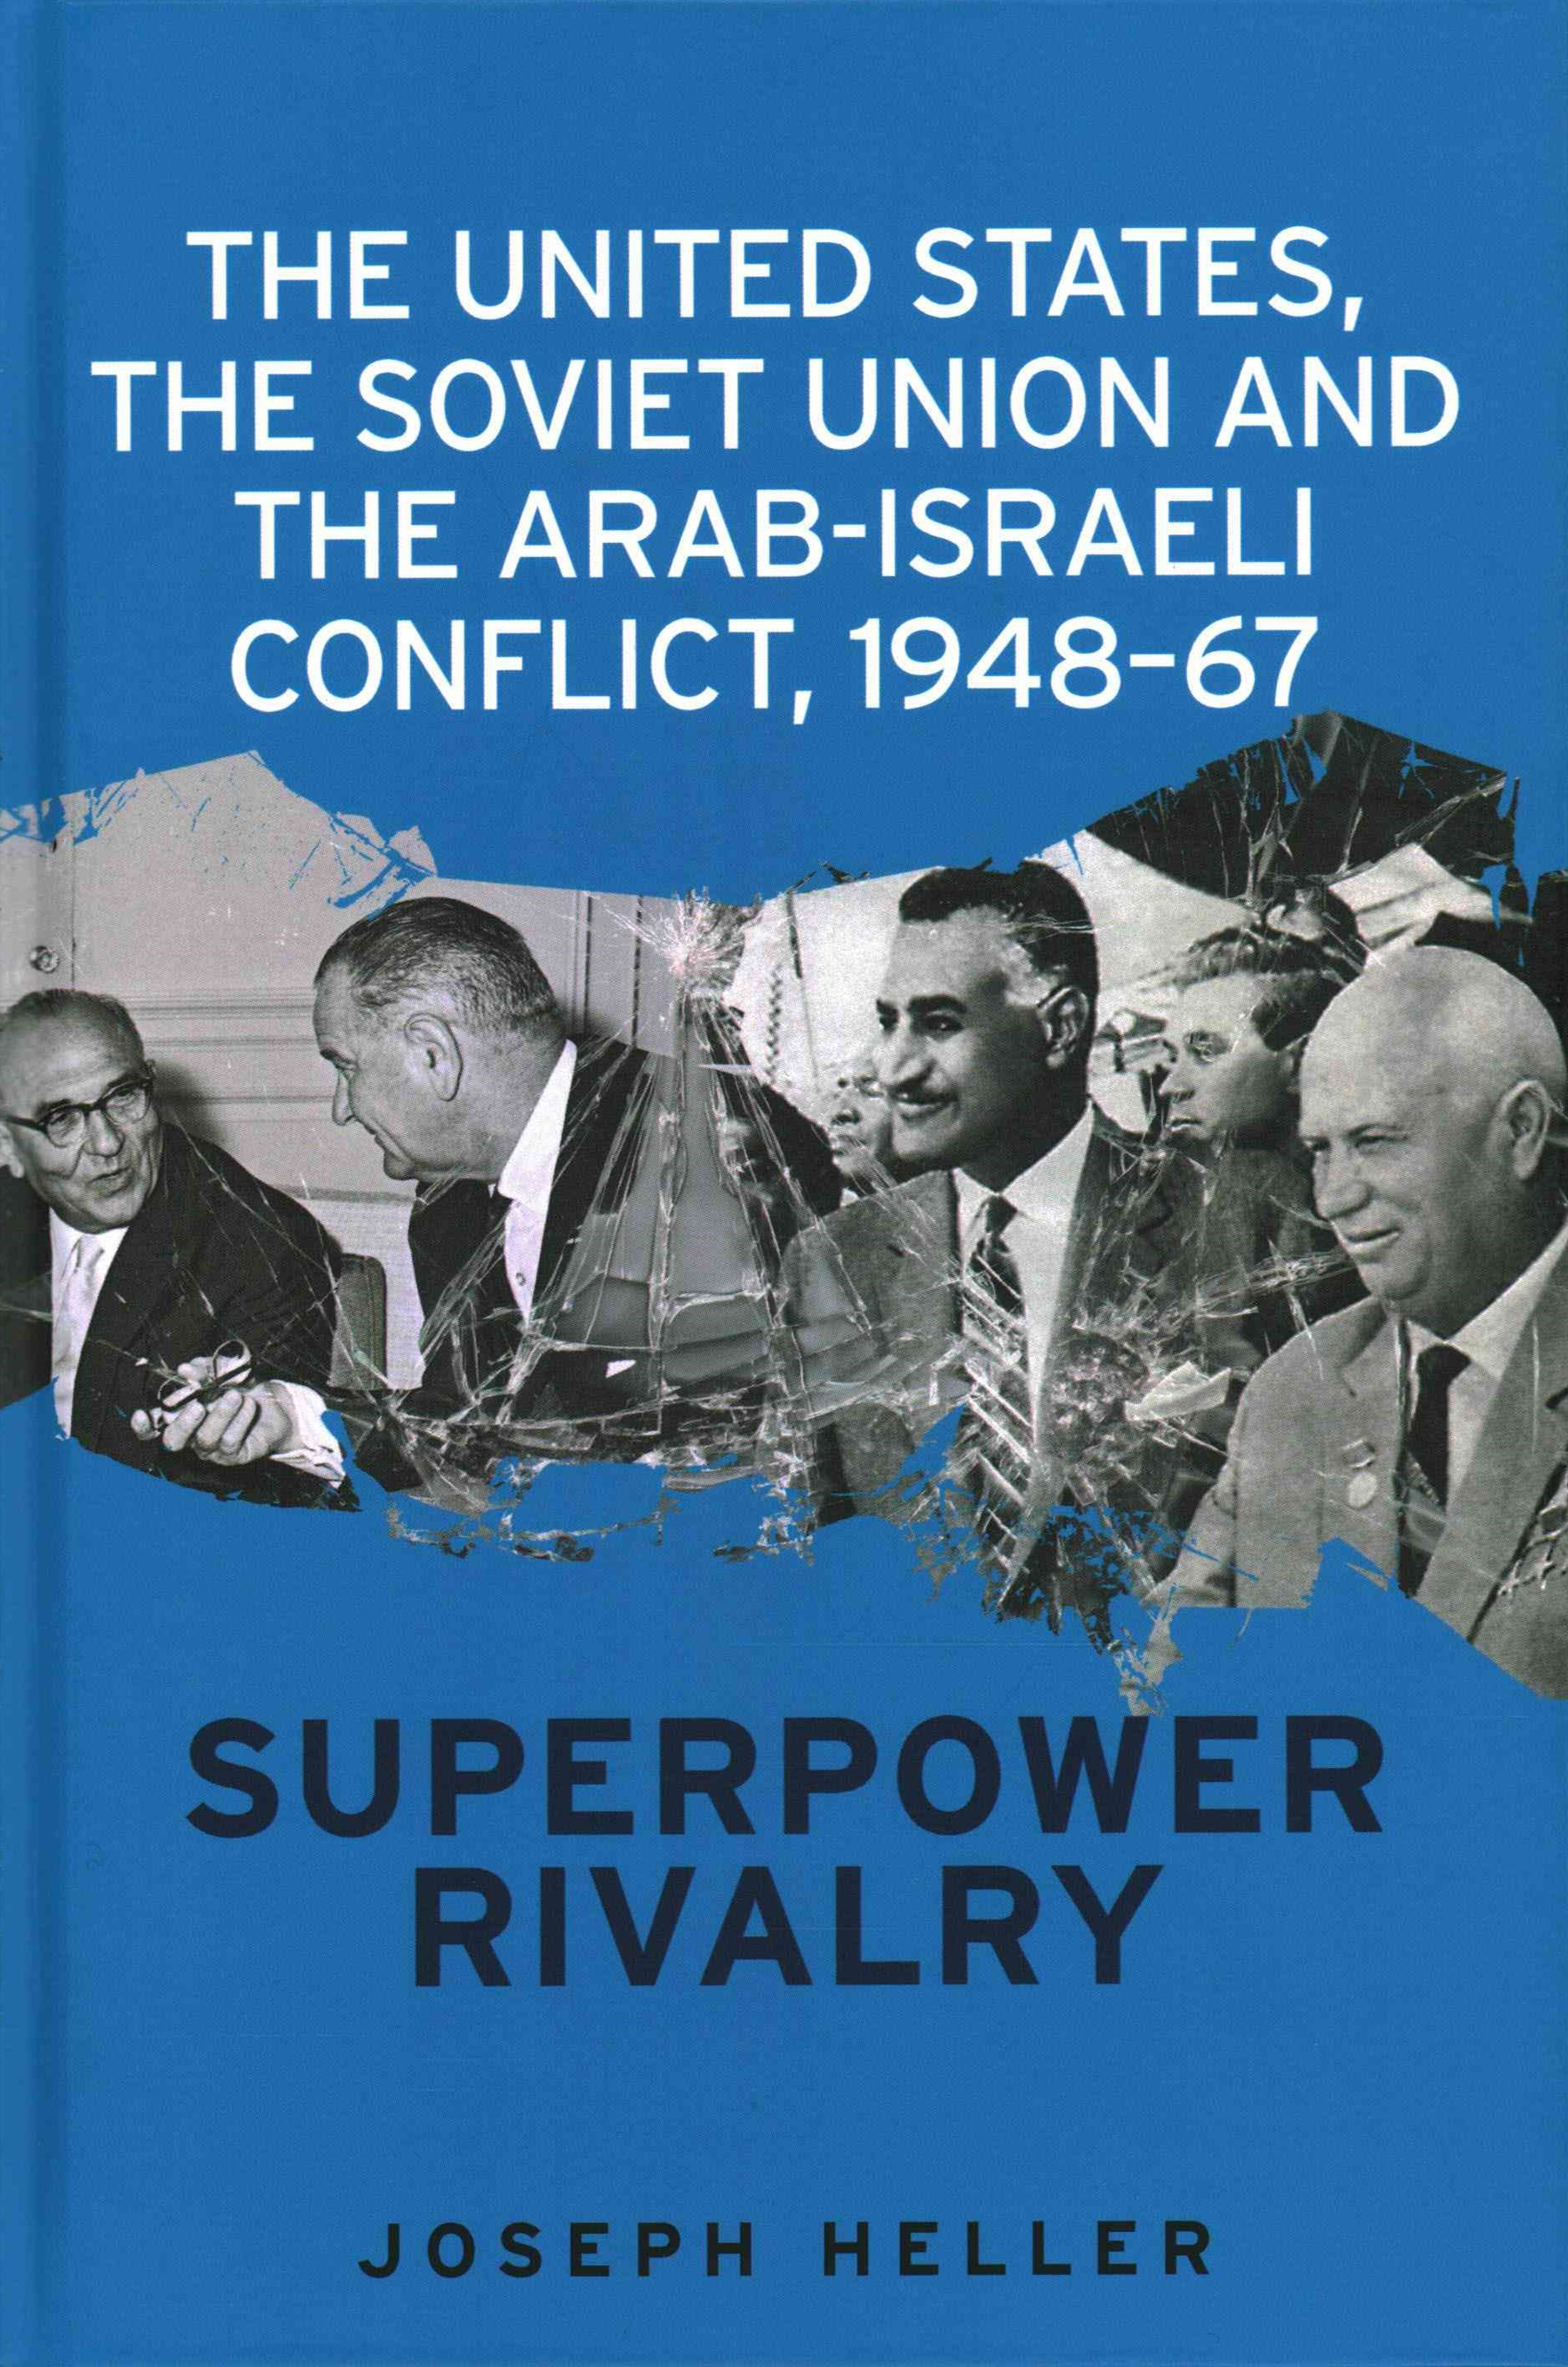 United States, the Soviet Union and the Arab-Israeli Conflict, 1948-67